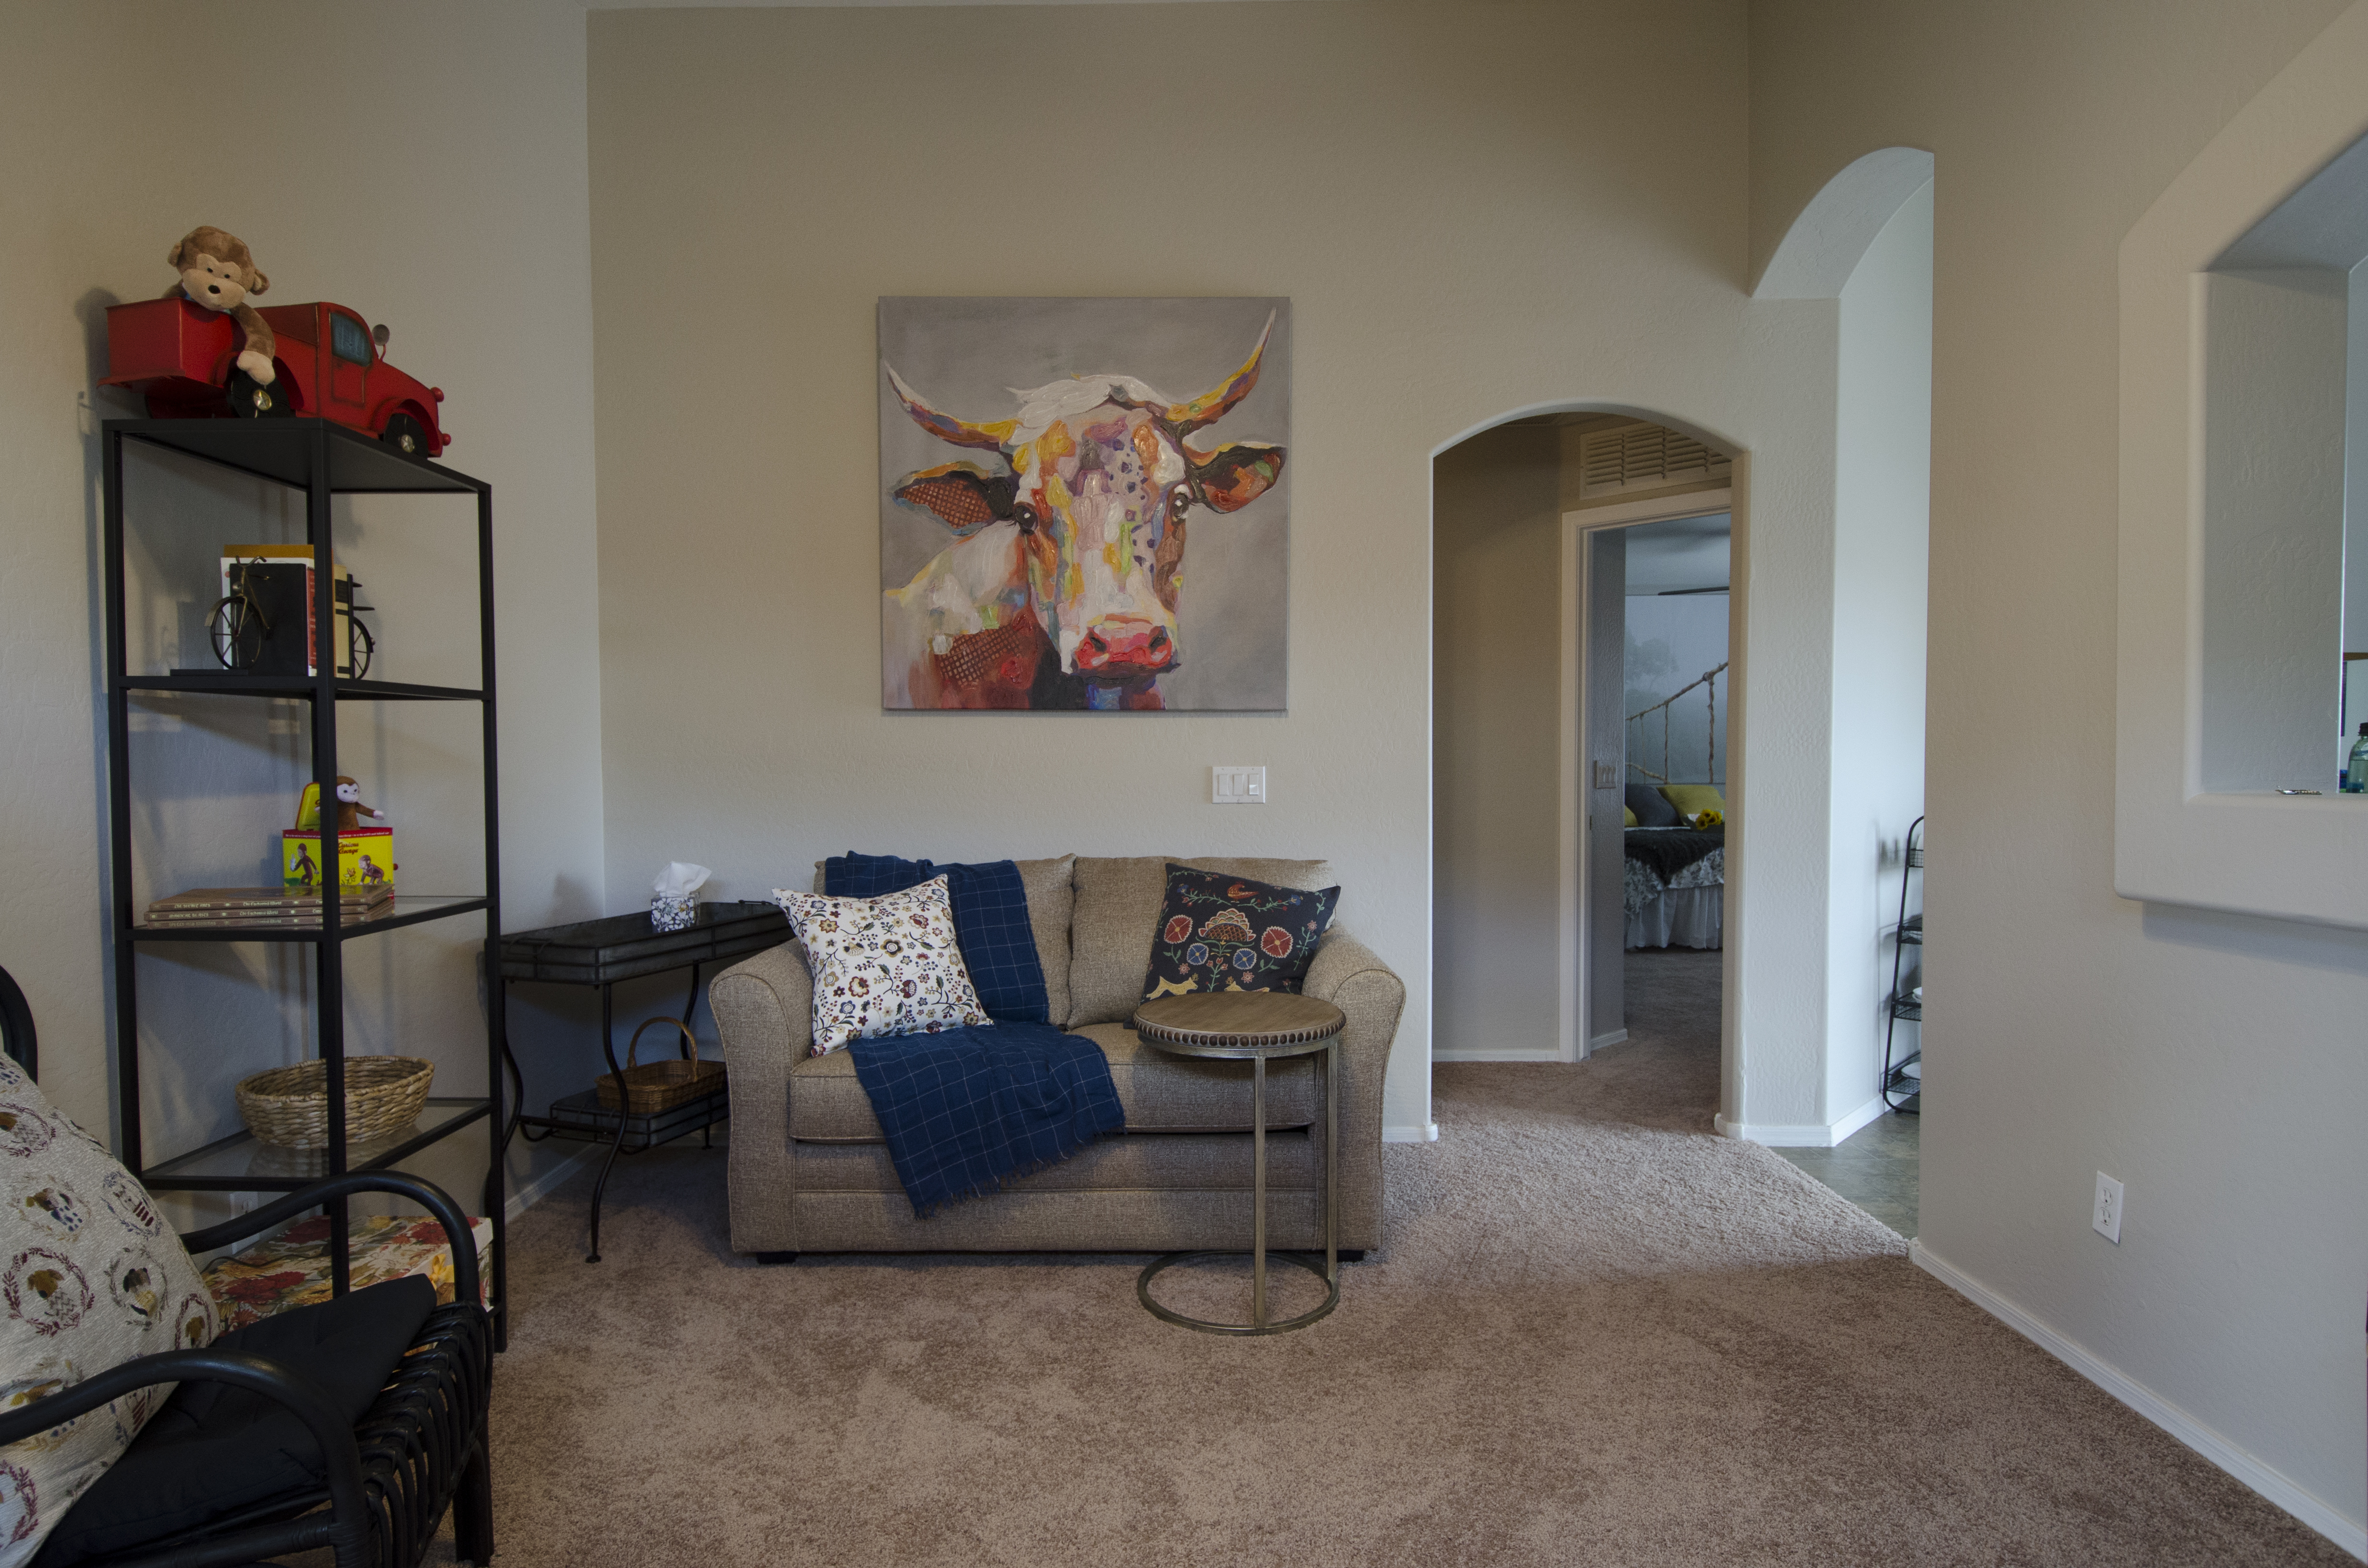 How Do You Design Home For Someone With >> Design Blog Hsr Certified Professional Home Stager Interior Stylist